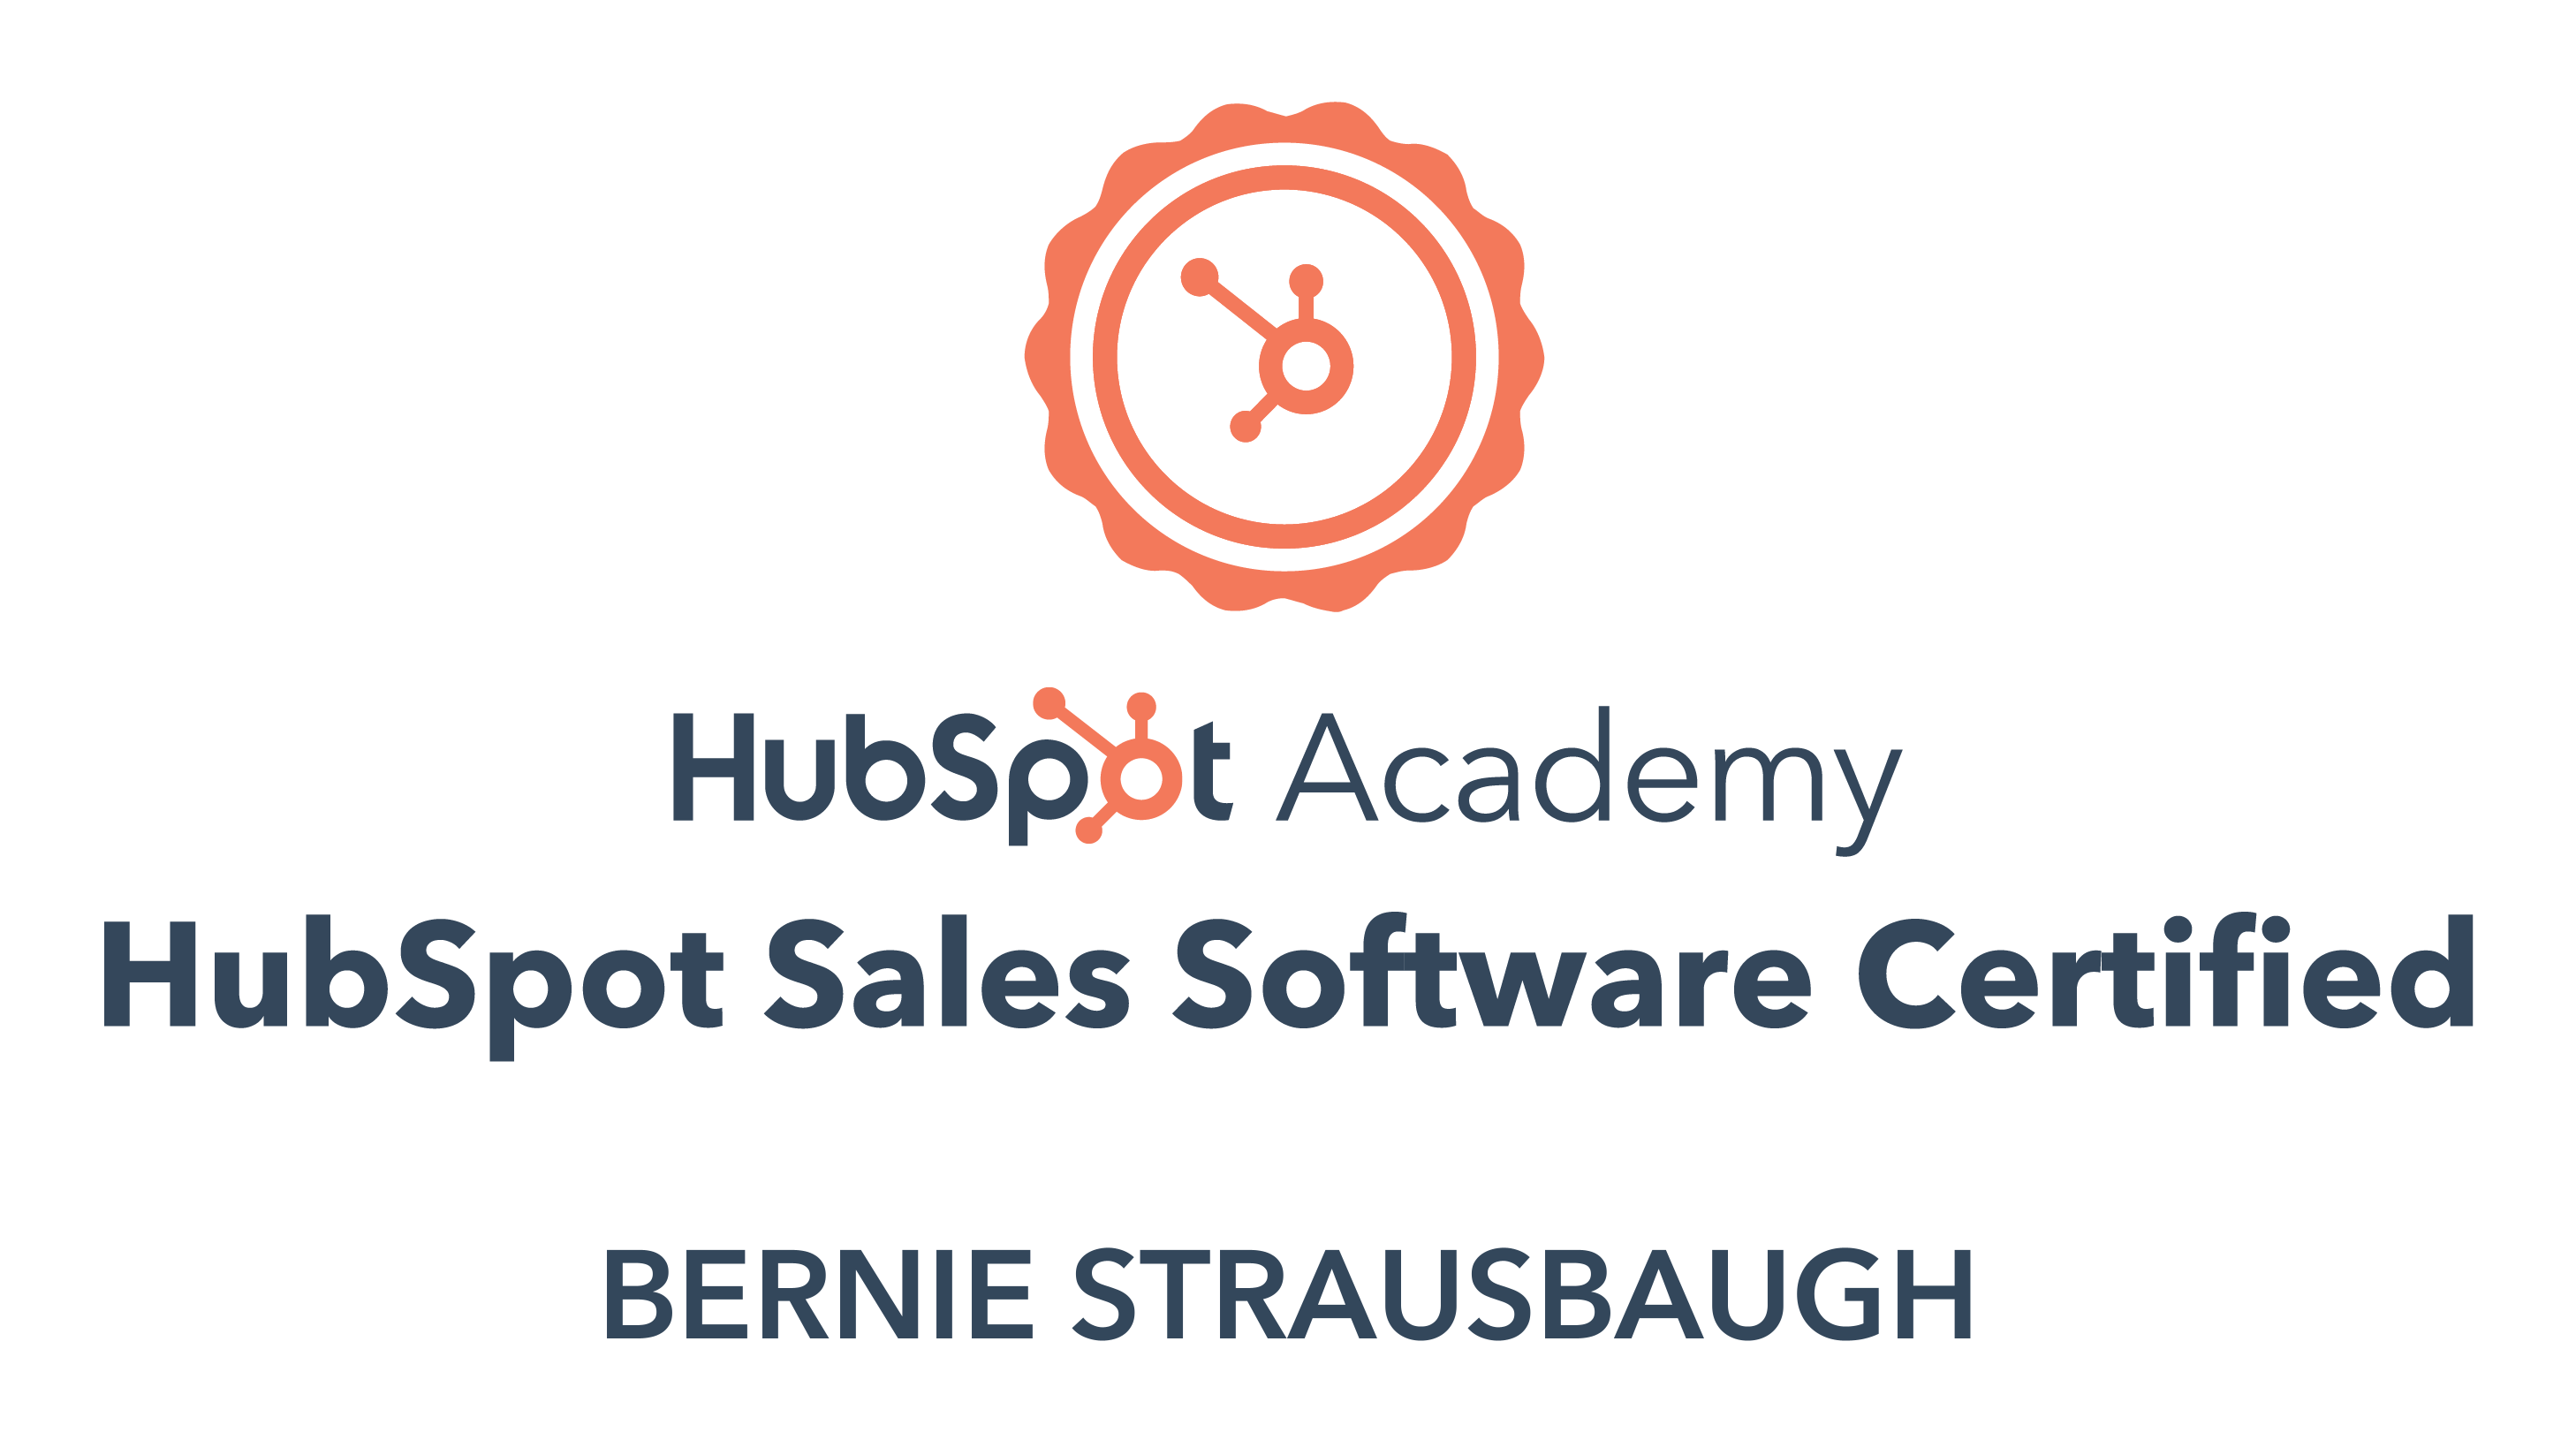 sales software cert